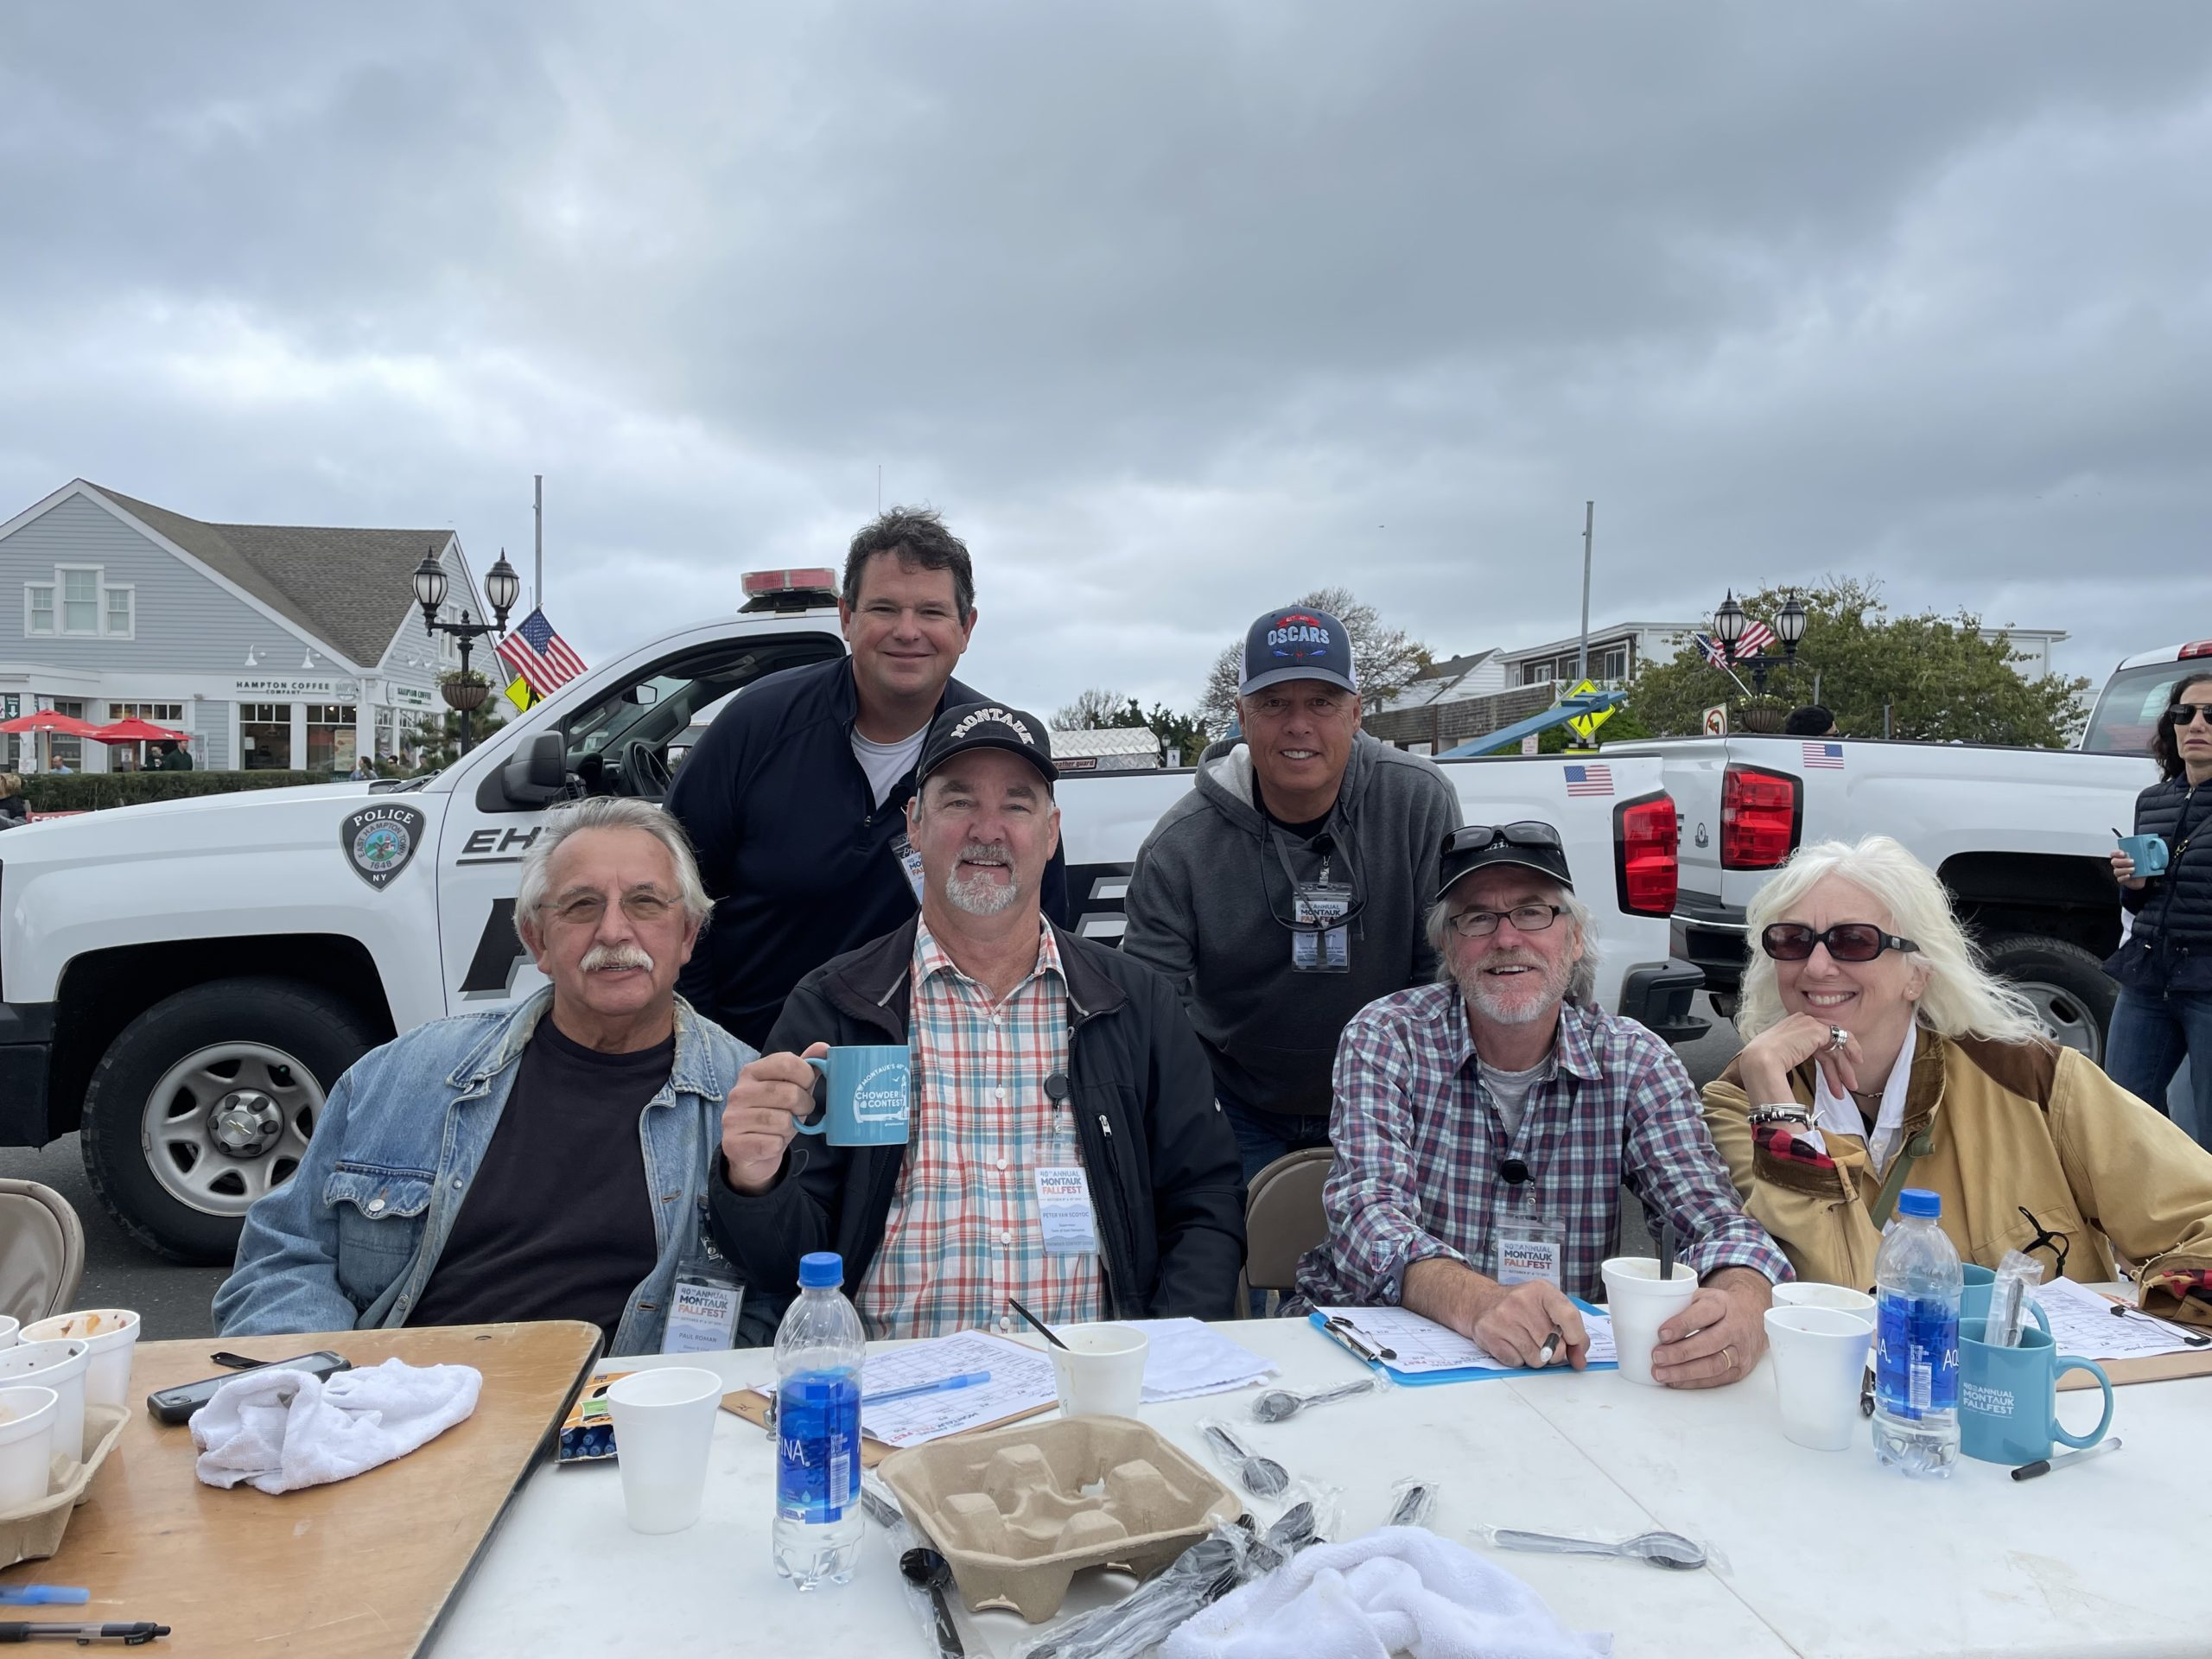 It's a tough job but someone has to do it: the clam chowder judges tasted all the entries at the 40th annual Montauk Fall Festival on Saturday. From left, Paul Roman, Gavin Menu, East Hampton Town Supervisor Peter Van Scoyoc, Mark Smith, Andrew Harris and Sally Richardson.